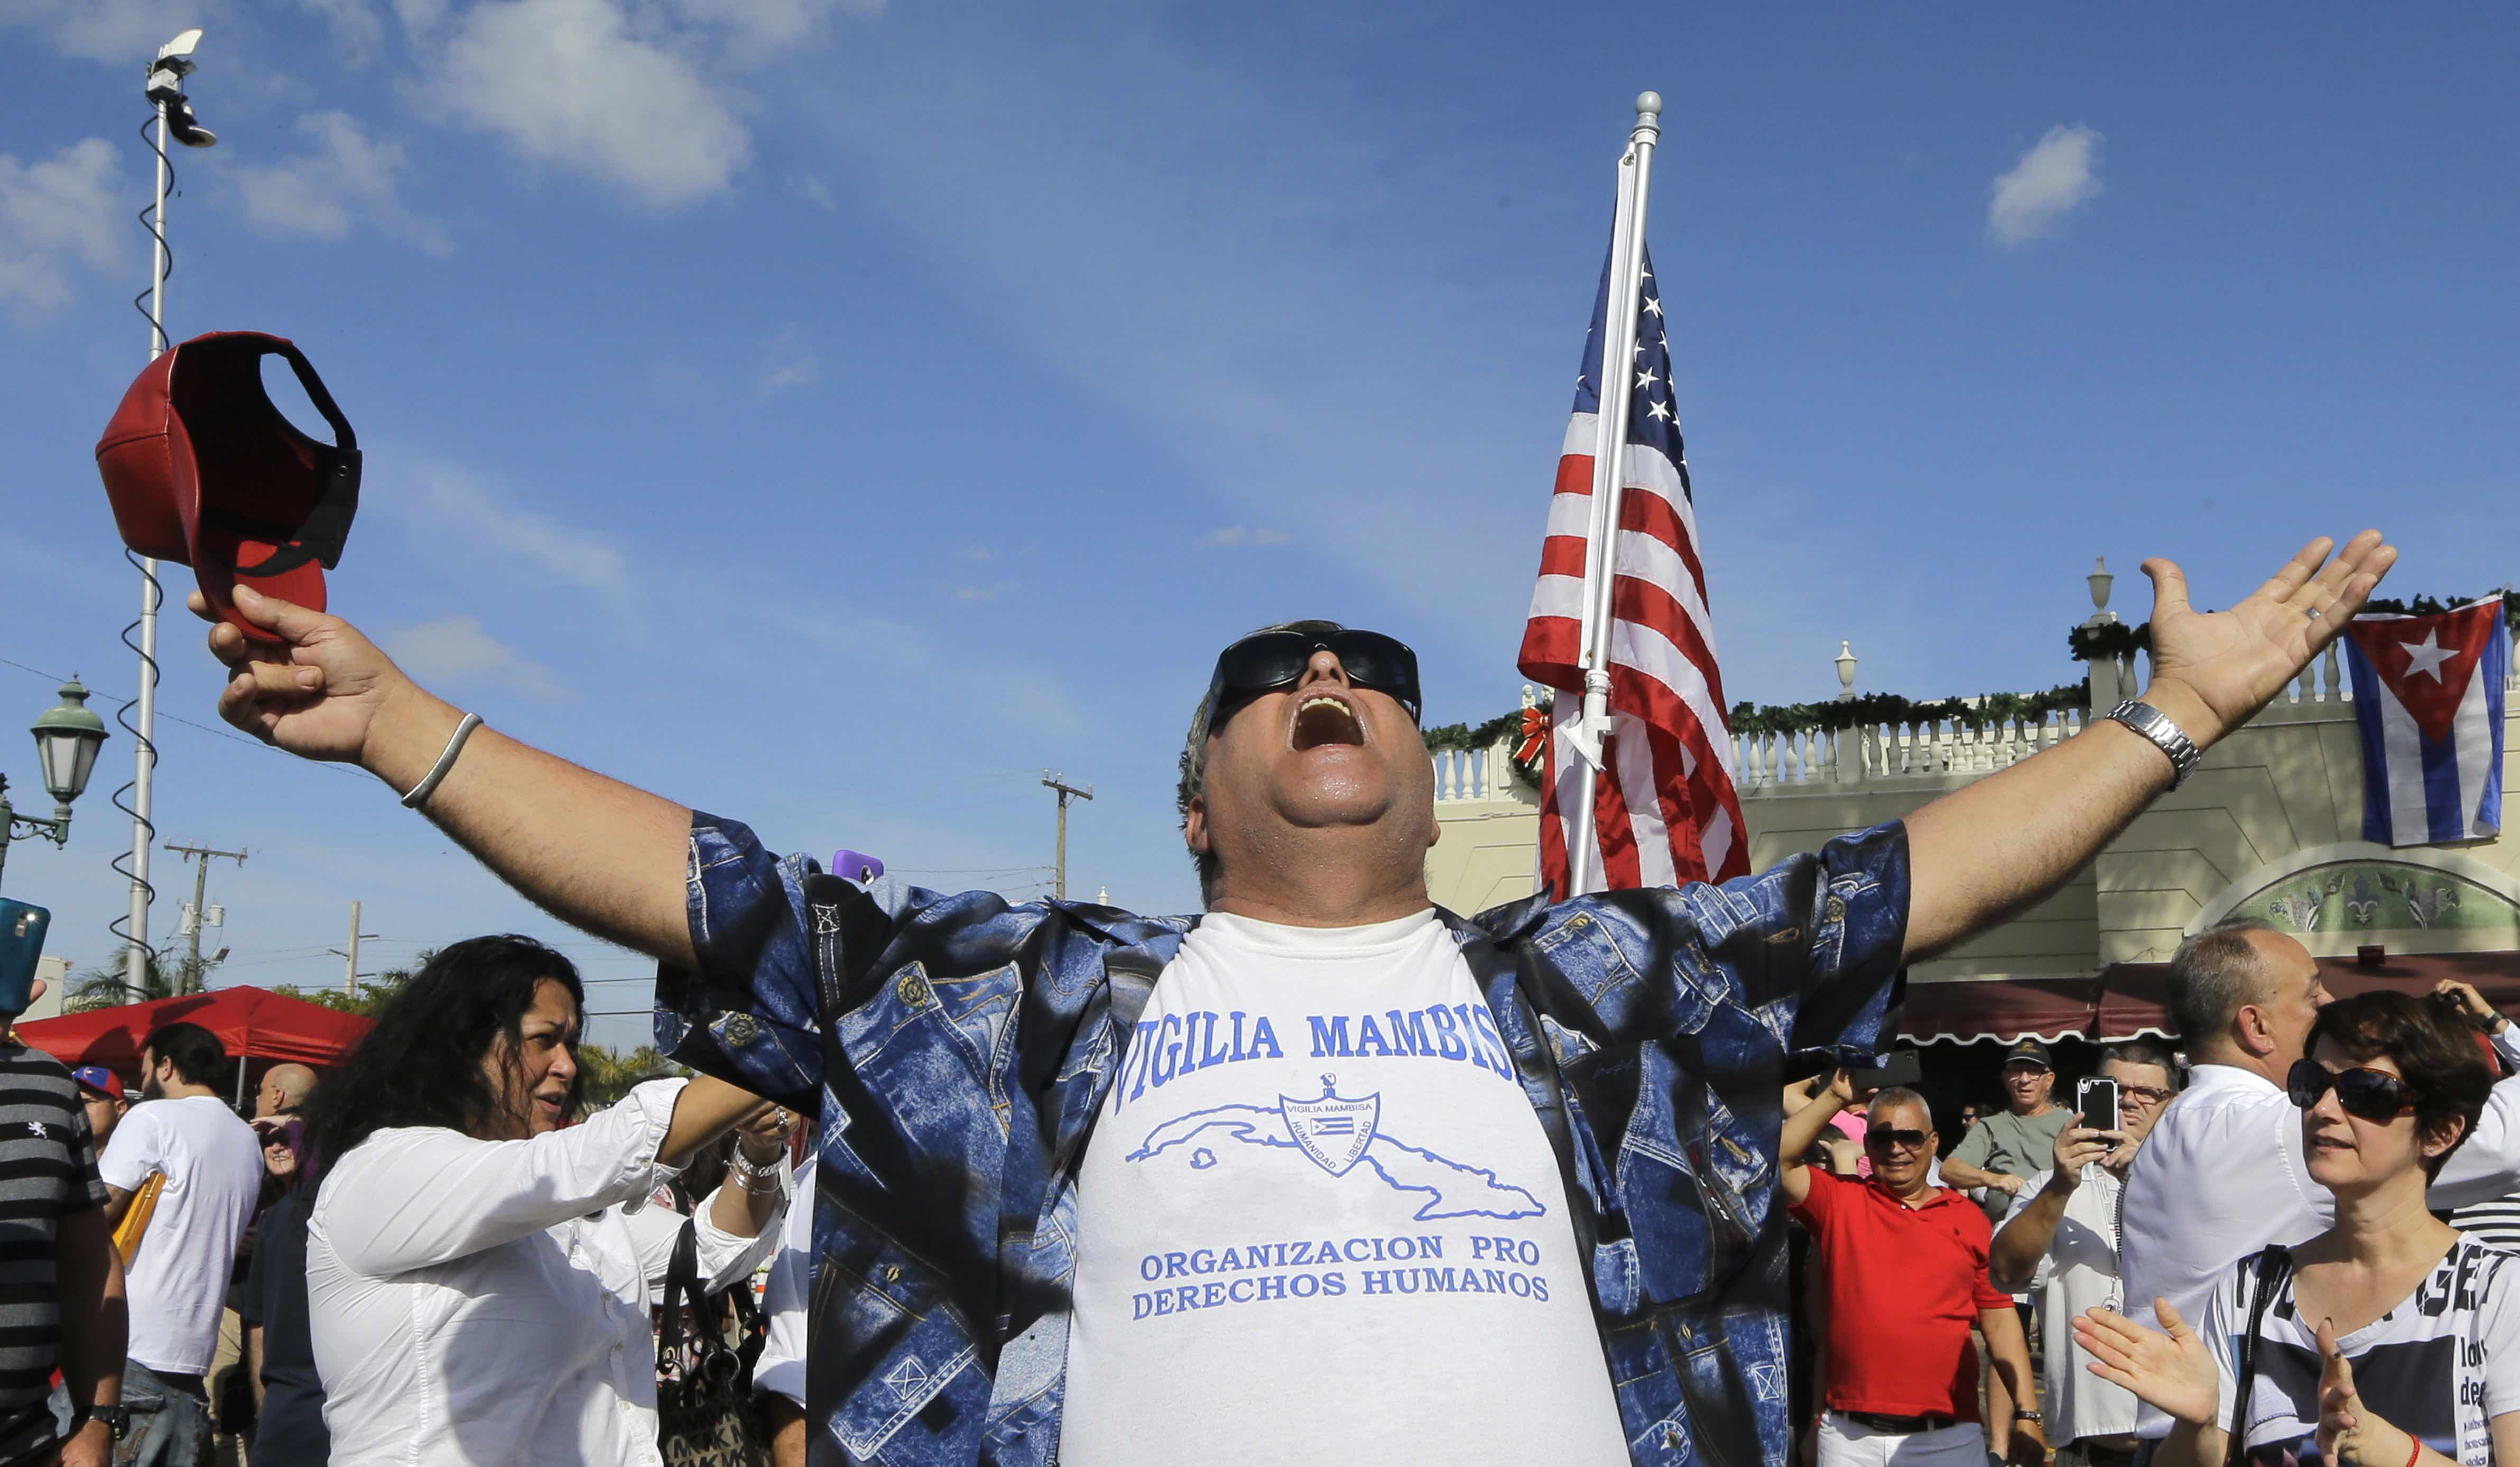 A members of the Cuban community reacts to the death of Fidel Castro, Saturday, Nov. 26, 2016, in the Little Havana area in Miami. Castro, who led a rebel army to improbable victory in Cuba, embraced Soviet-style communism and defied the power of 10 U.S. presidents during his half century rule, died at age 90. (AP Photo/Alan Diaz)